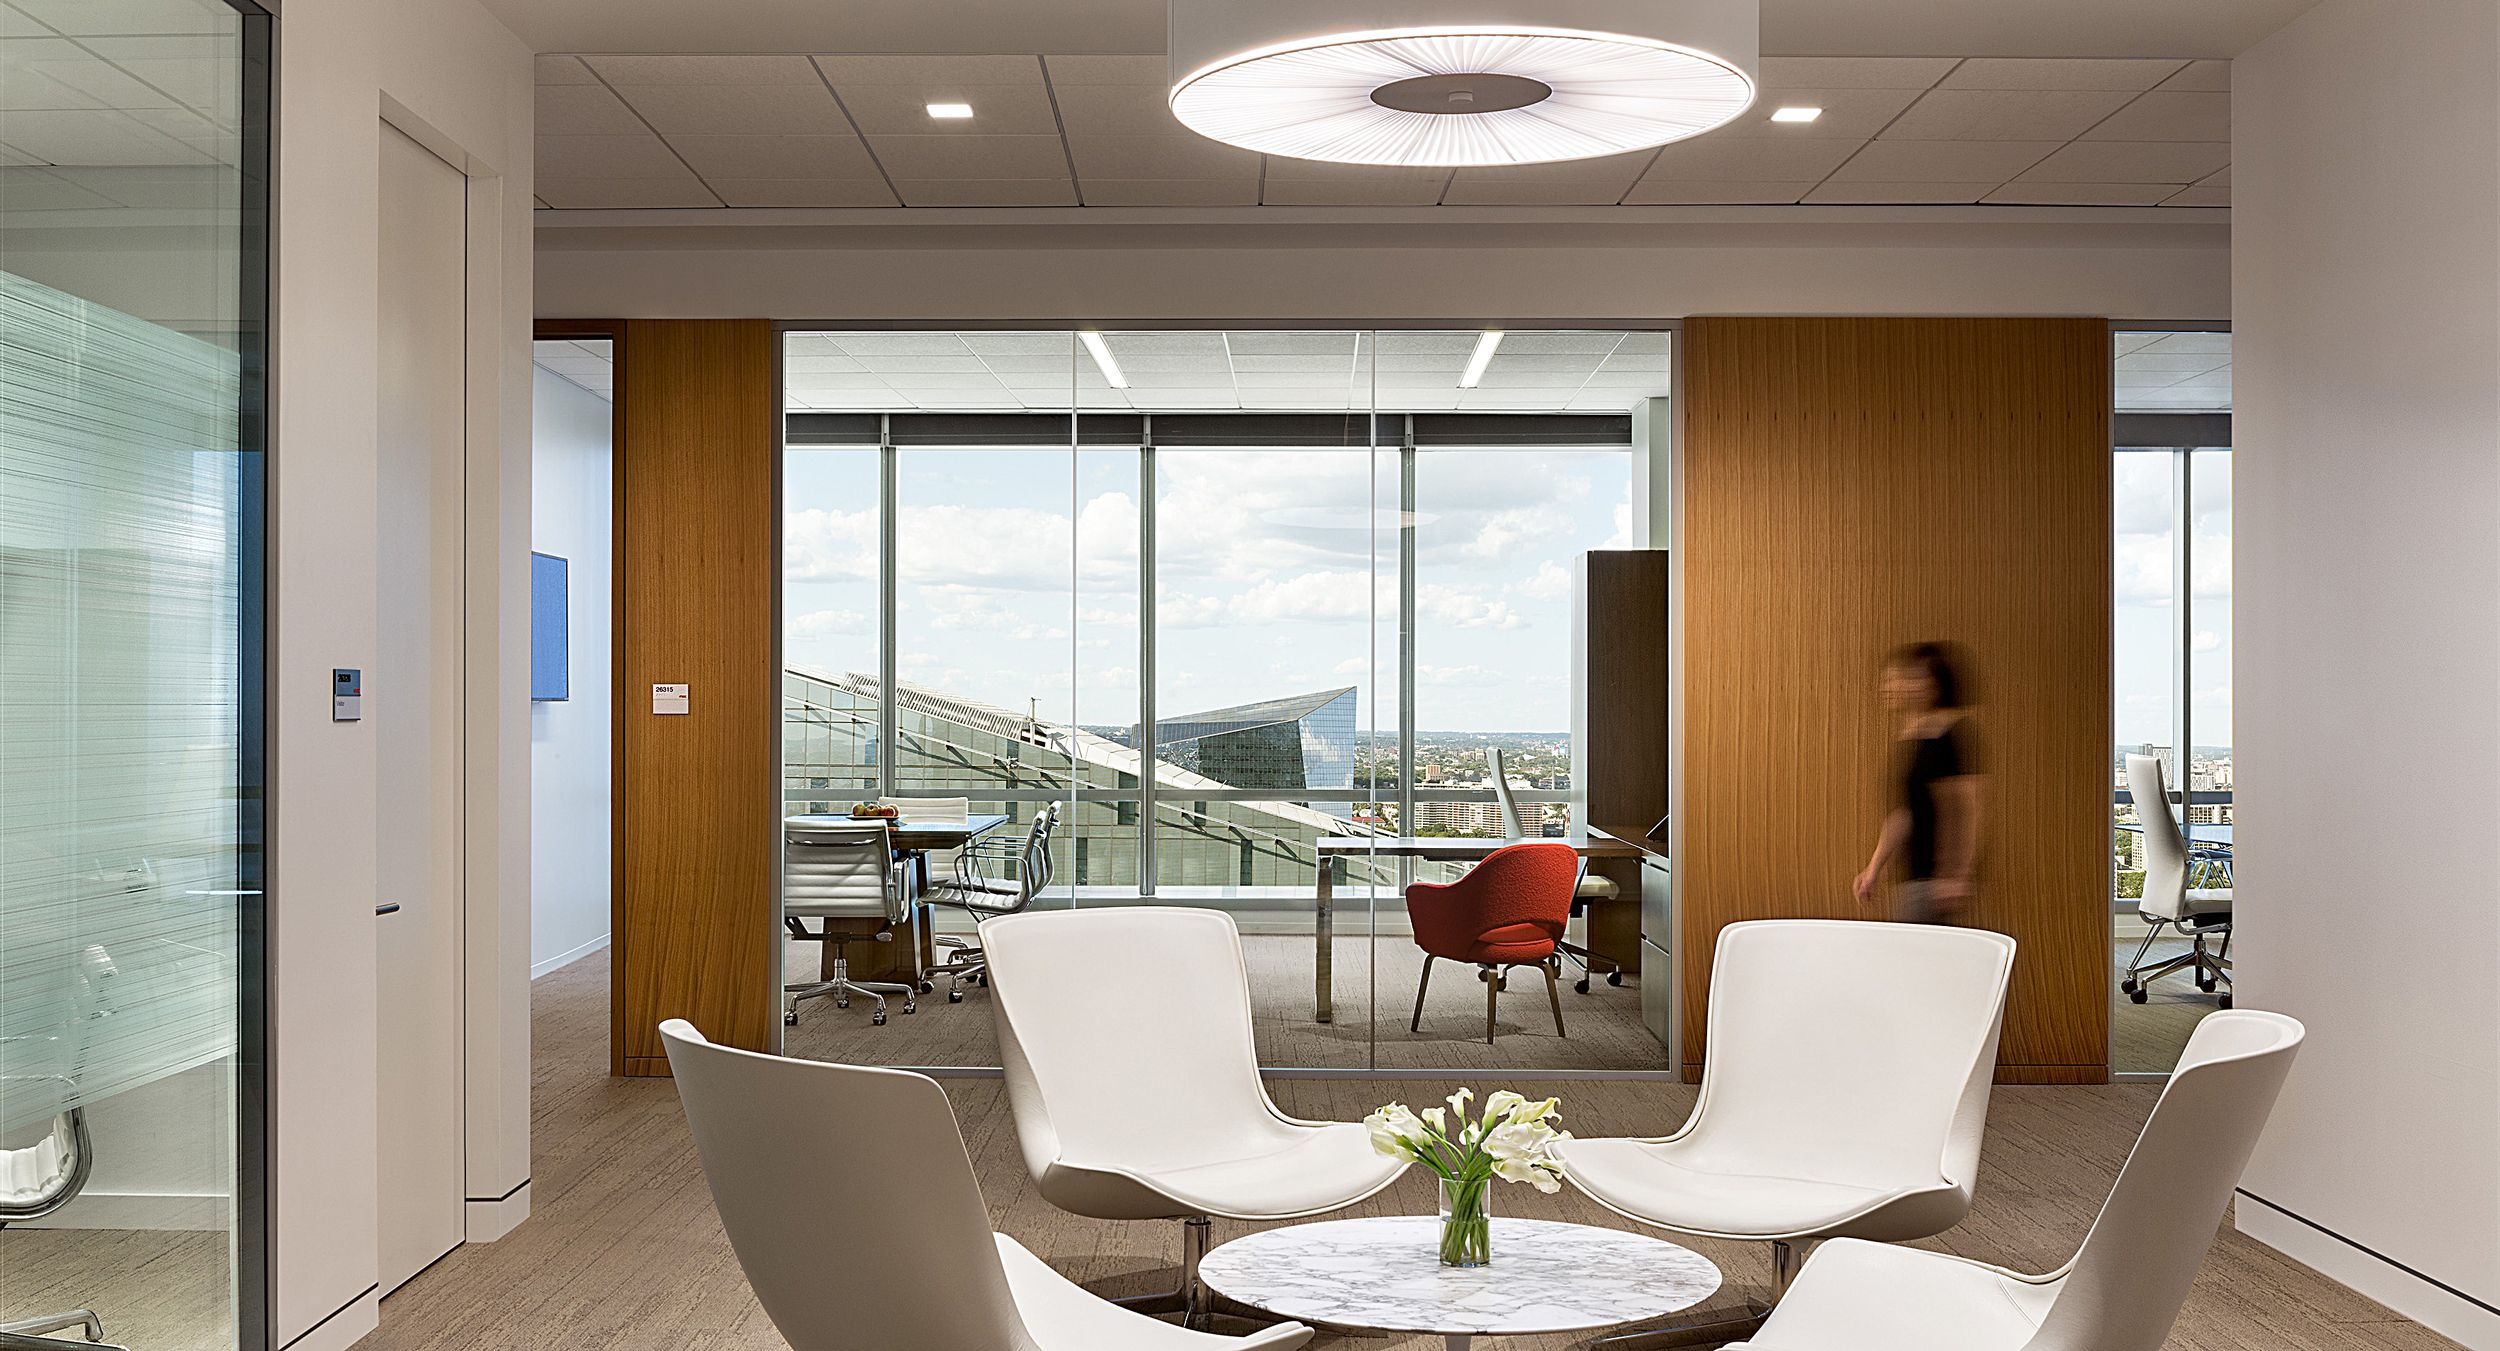 Spectacular views and a New Millennia private office paired with a Mesa conference table.